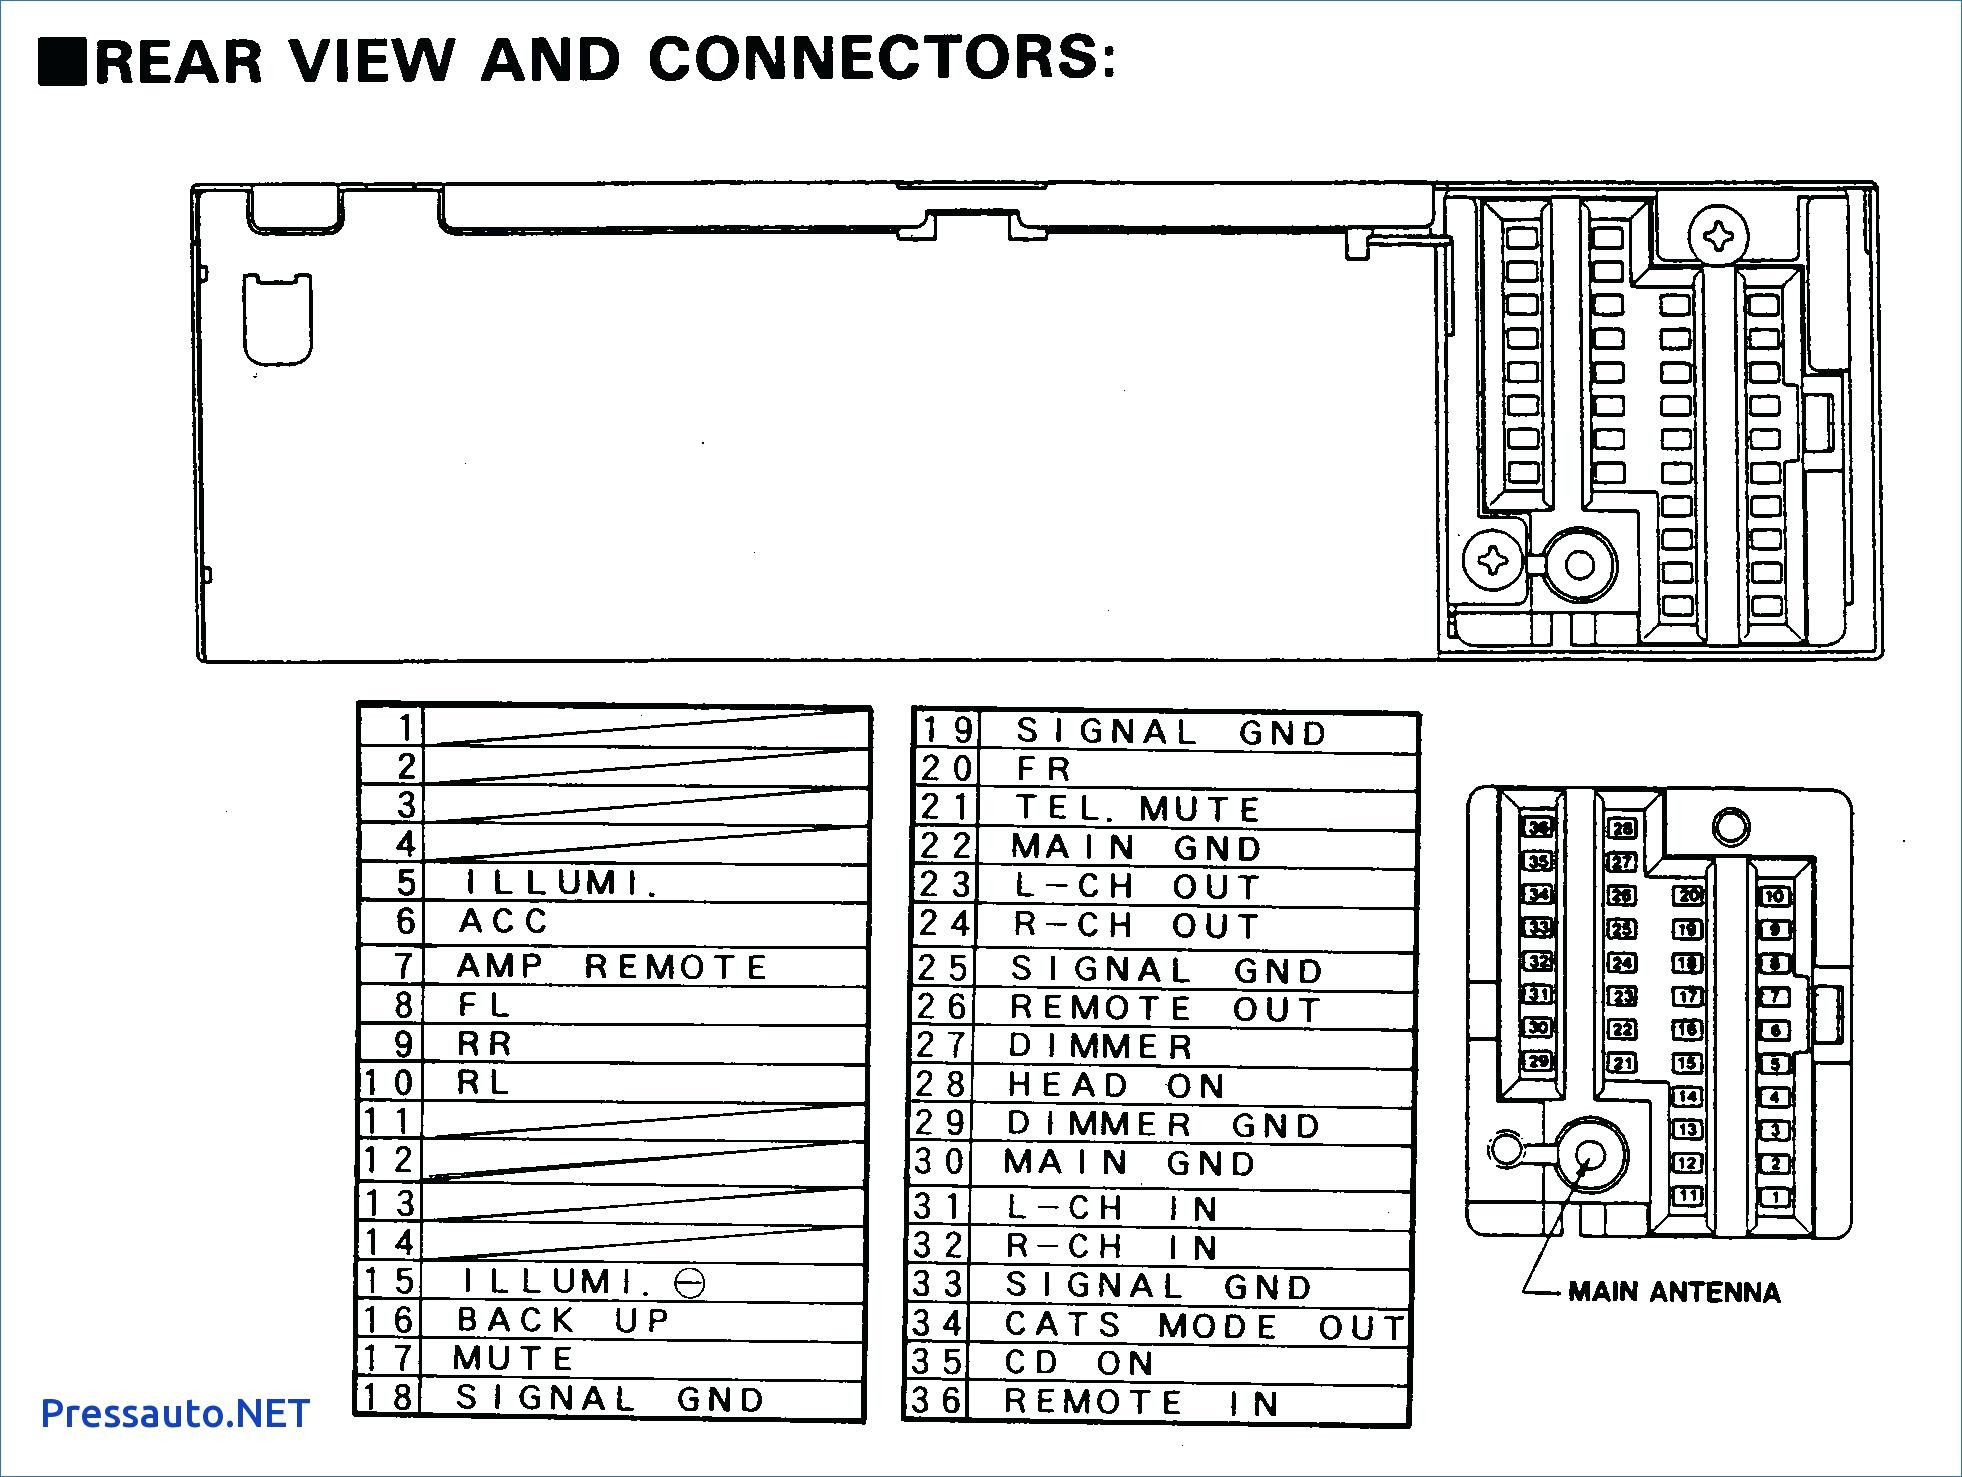 Toyota Camery Wiring Schematics Daily Update Diagram 2003 Camry Le I L Engine Anything Diagrams 2001